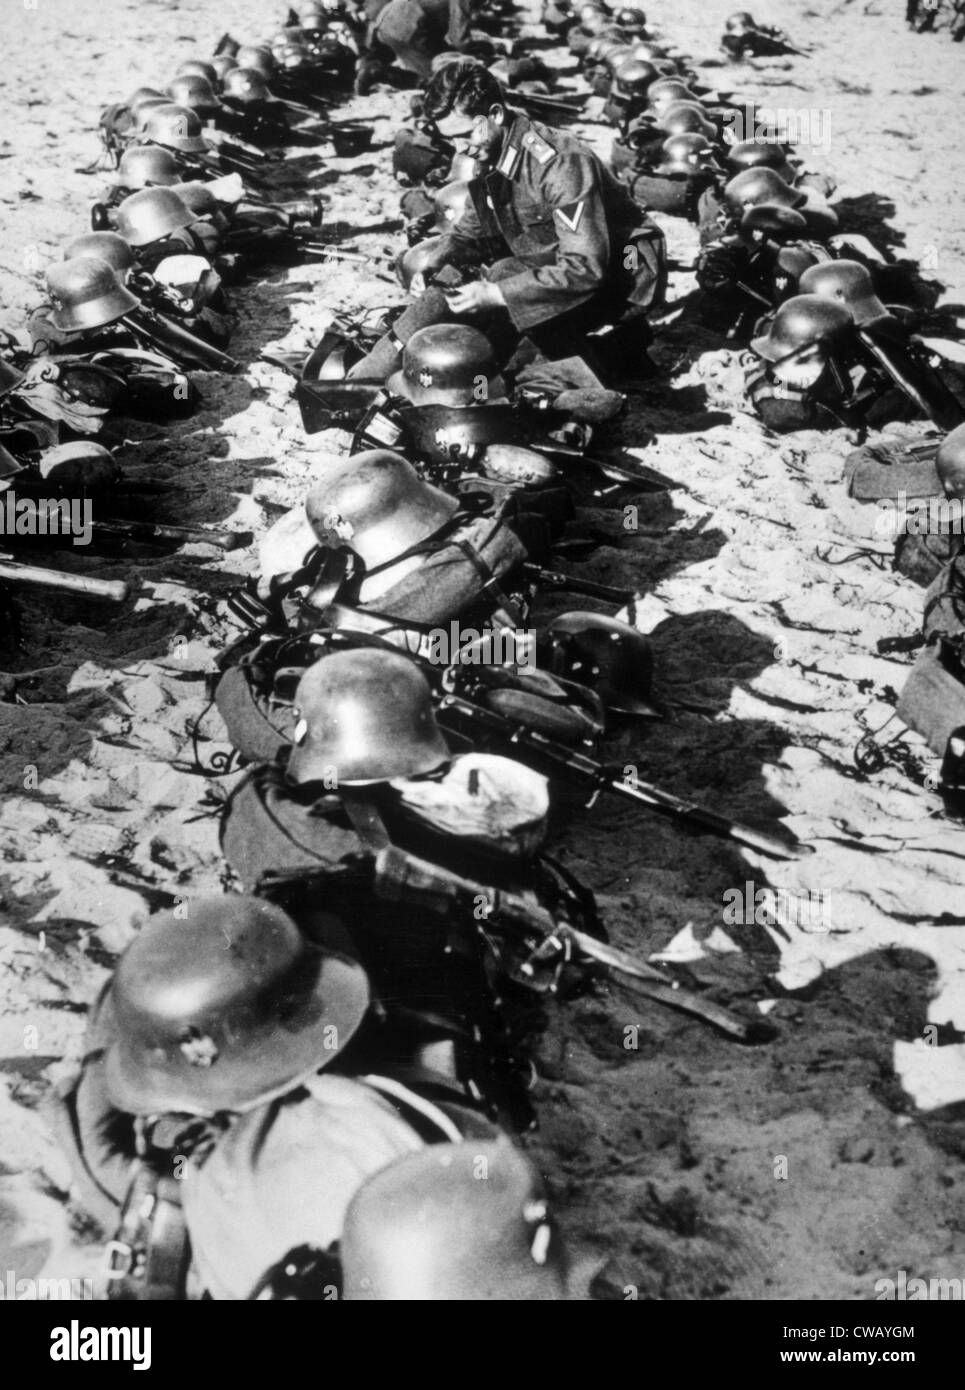 Nazi Germany, A German soldier inspecting steel helmets and other equipment for the Wehrmacht (armed forces) in - Stock Image